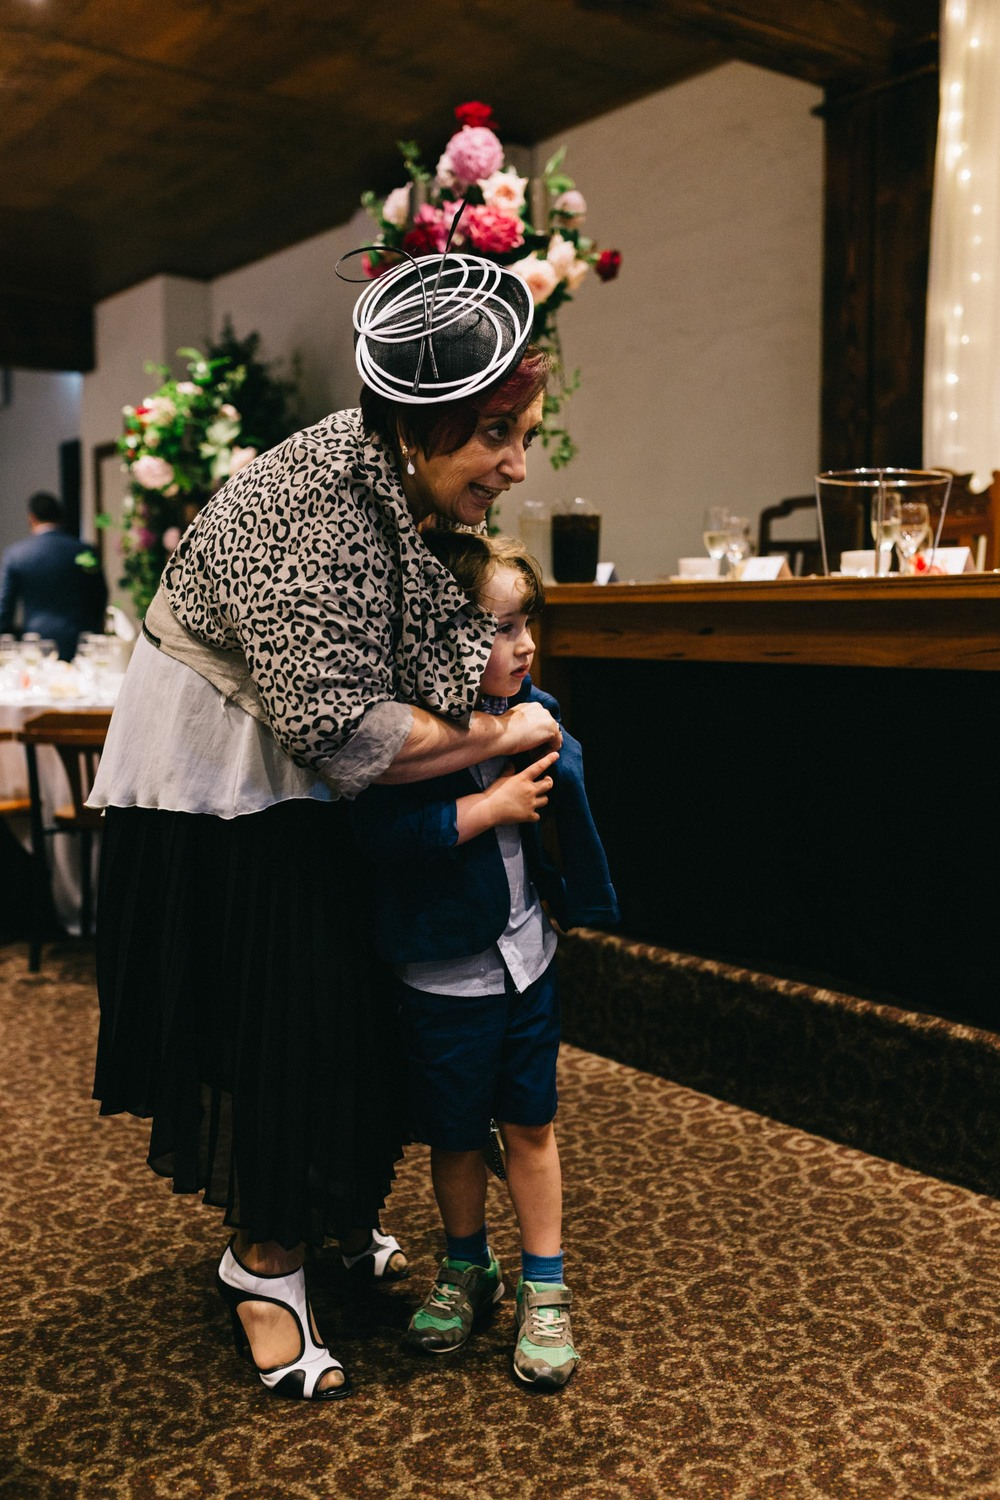 1601_Marnie Hawson Melbourne wedding photographer_097.jpg